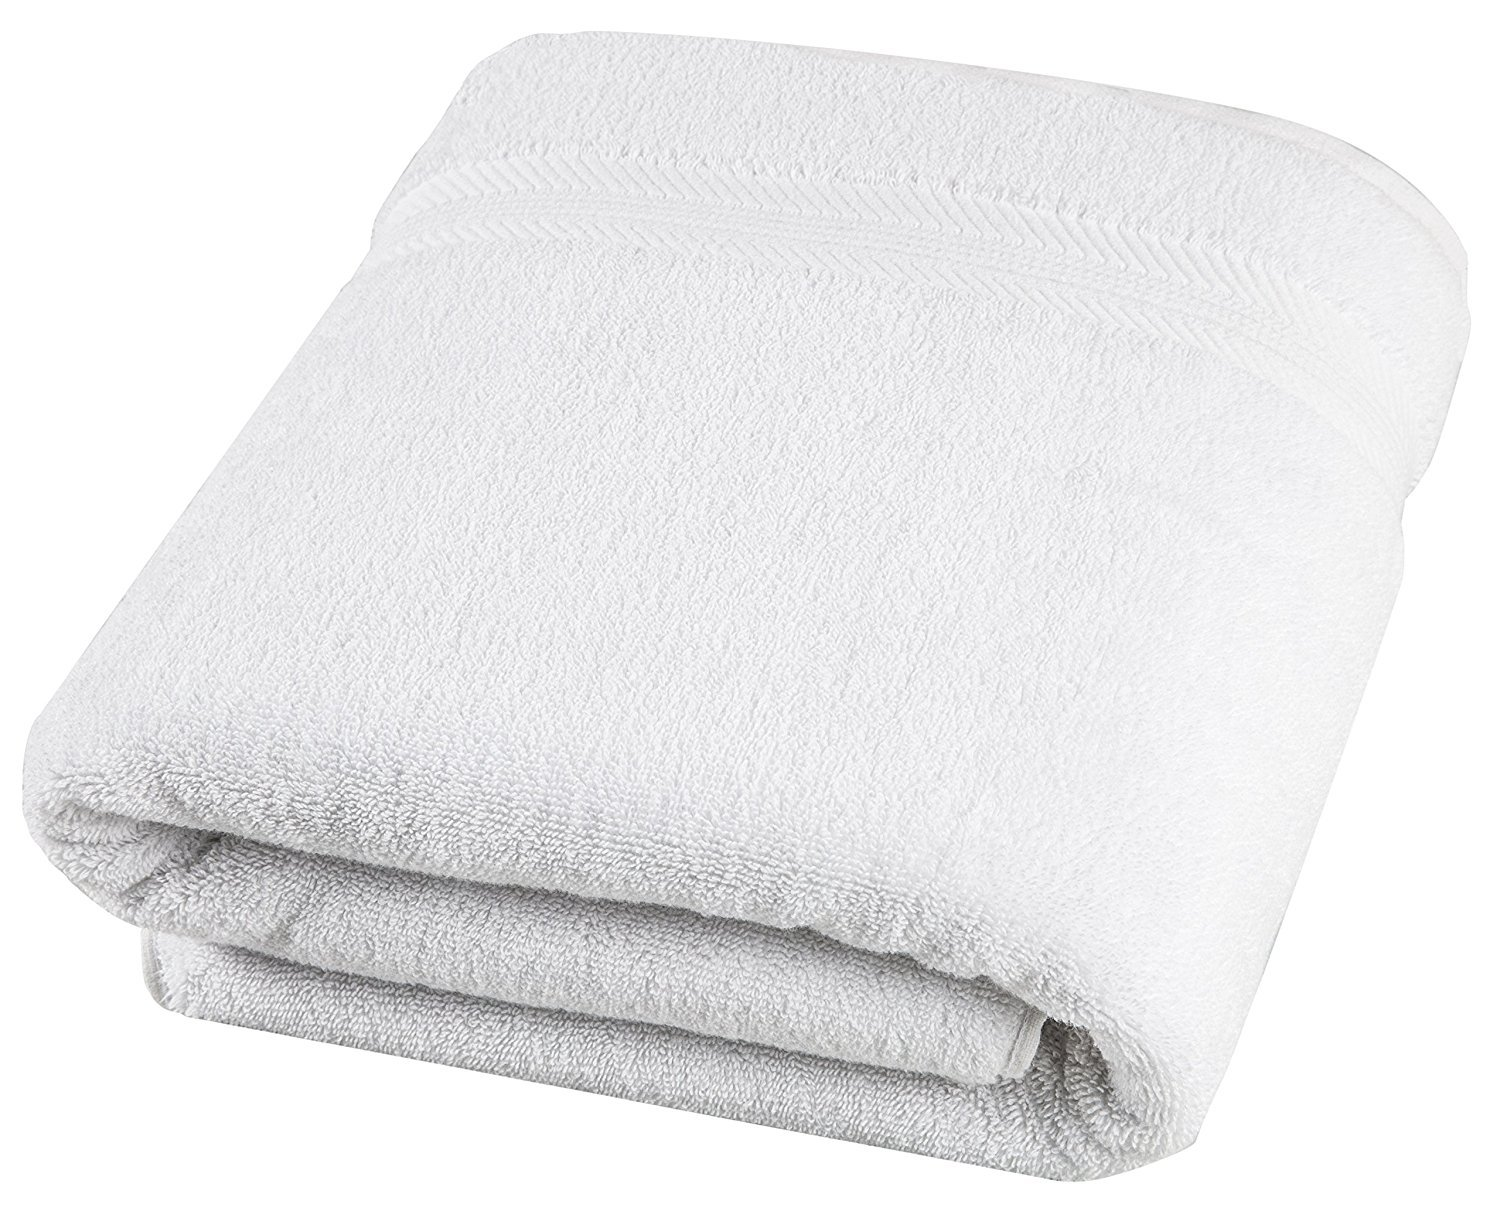 650 GSM Hotel and Spa Quality, 100% Ring Spun Genuine Cotton, Absorbent, Soft, Comfortable and Large (35x70 Inches) Bath Sheet for Home, Bathroom, Pool and Beach by MoonDeal, White